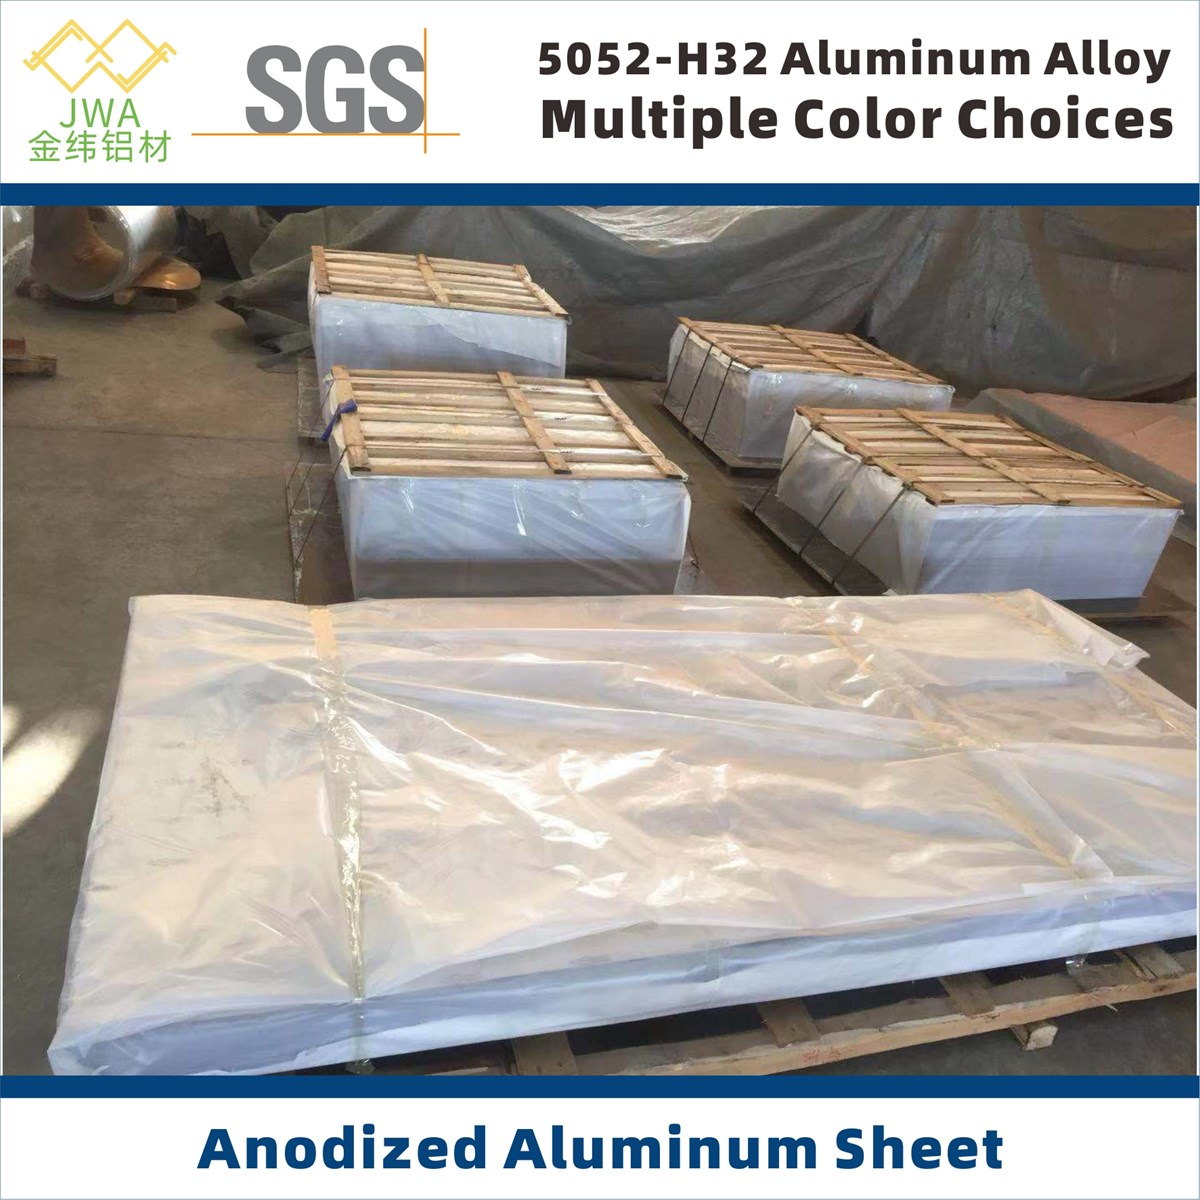 Factory Supplies 5052H32 Anodized Aluminum Sheet for Hallway Decoration Anodized Aluminum Coil Metal Facade Materials